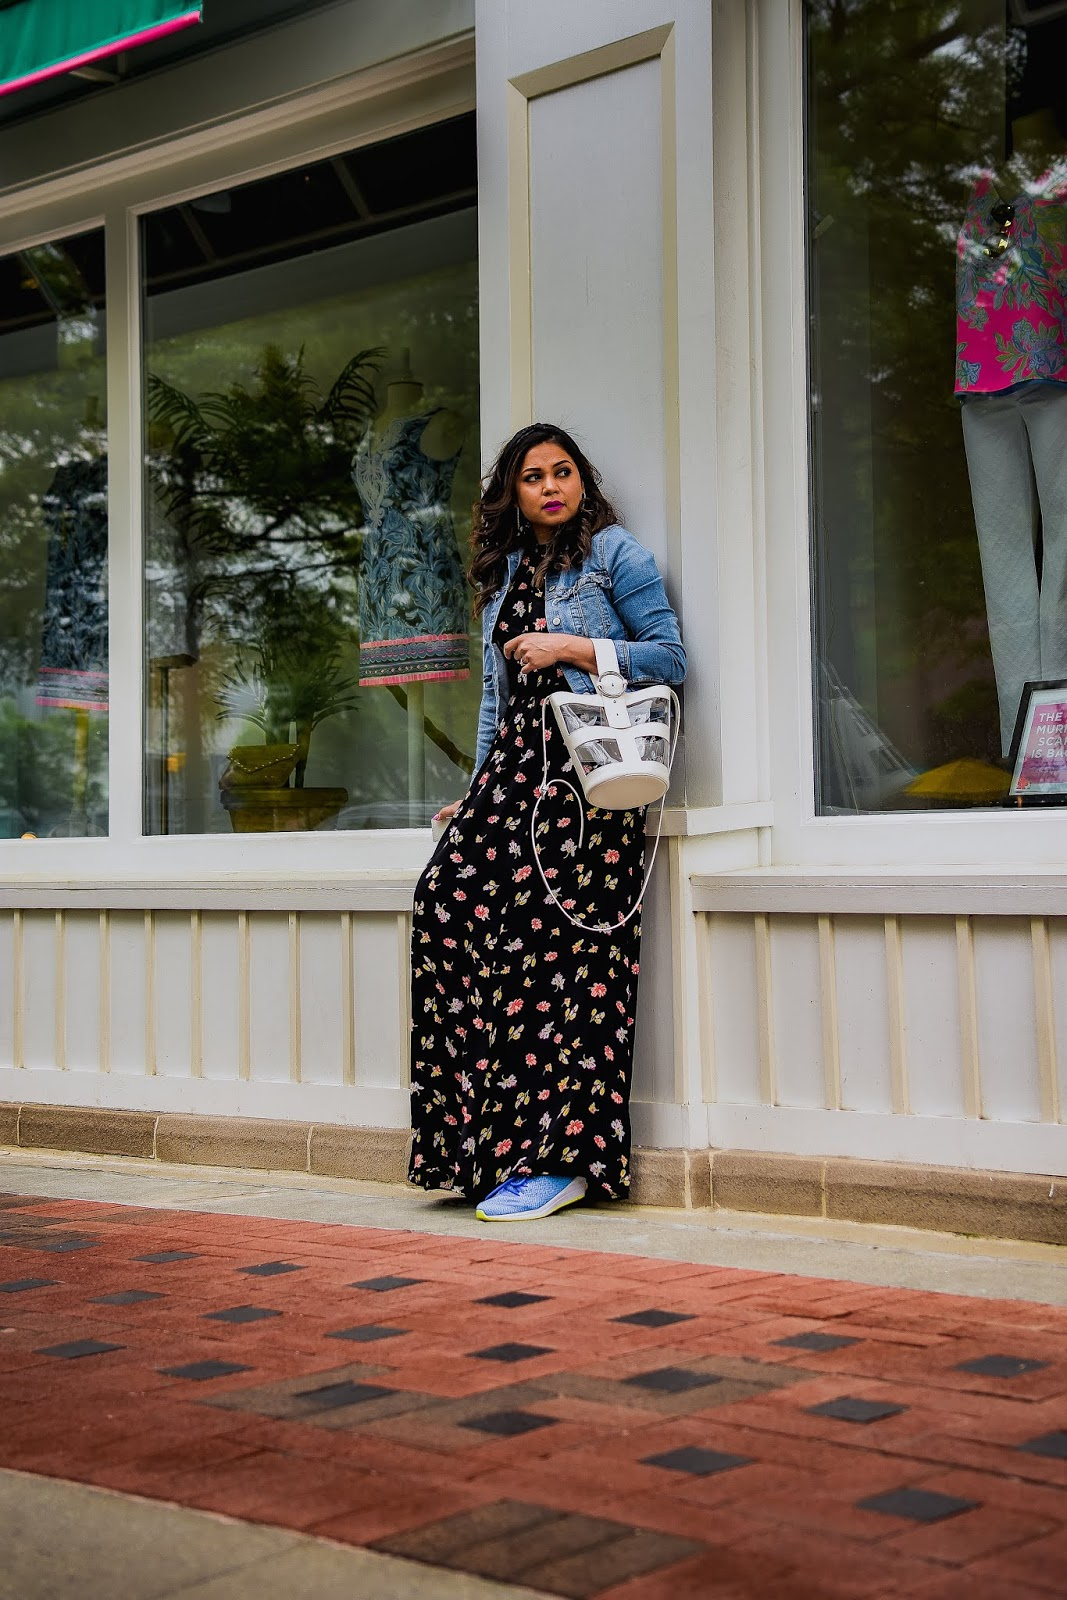 rent the runway maxi dress, denim jacket, sneakers with dress, ootd, street style, fashion, style, myriad musings, saumya shiohare .